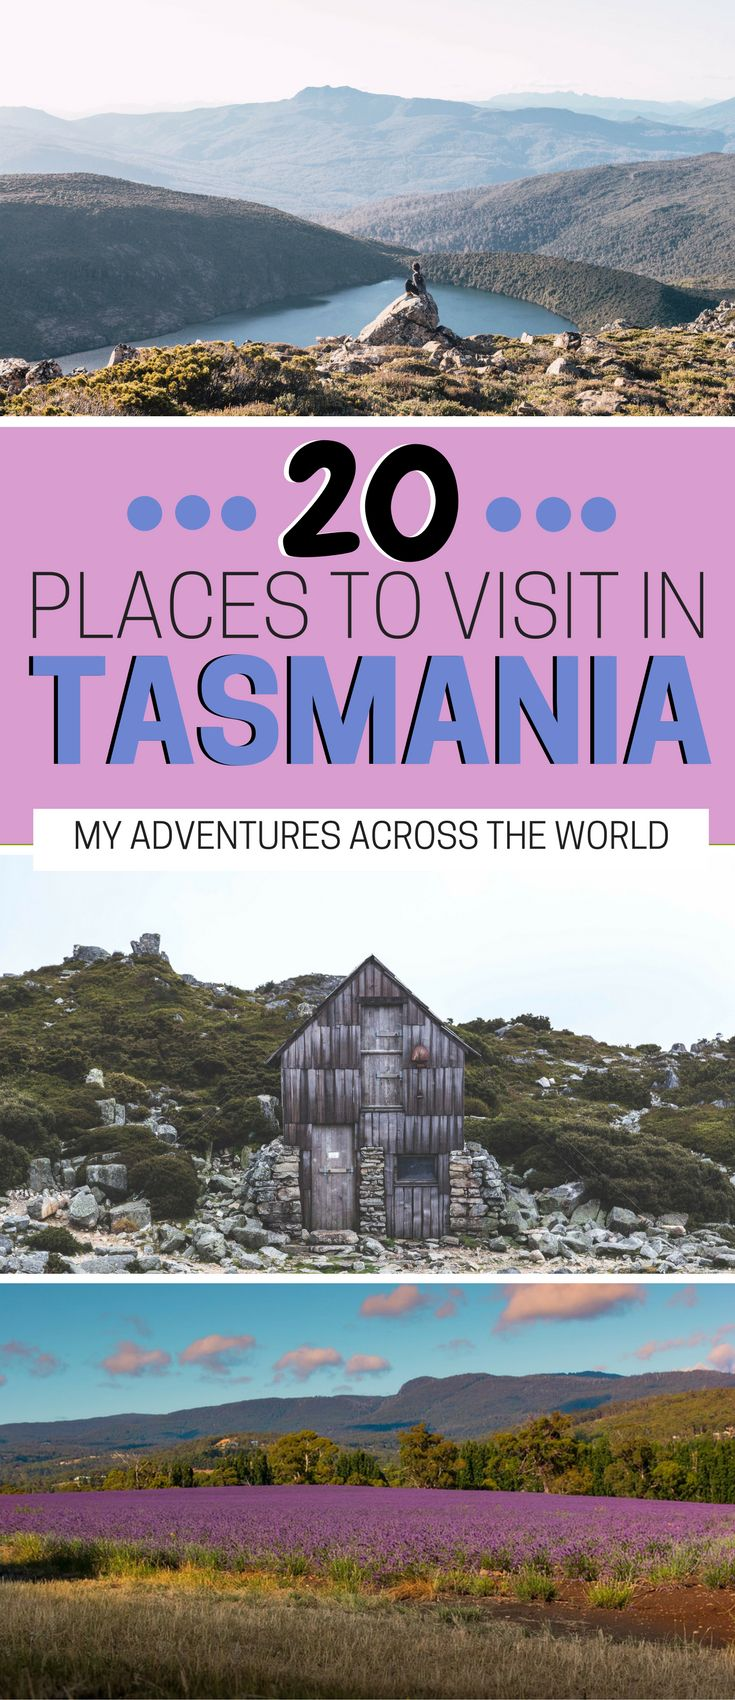 Tasmania is probably the most underrated destination in Australia! With stunning landscapes, breathtaking beaches, lavender fields and more, a Tasmania road trip will leave you speechless. Check out this ost for the 20 best things to do in Tasmania! | Tas